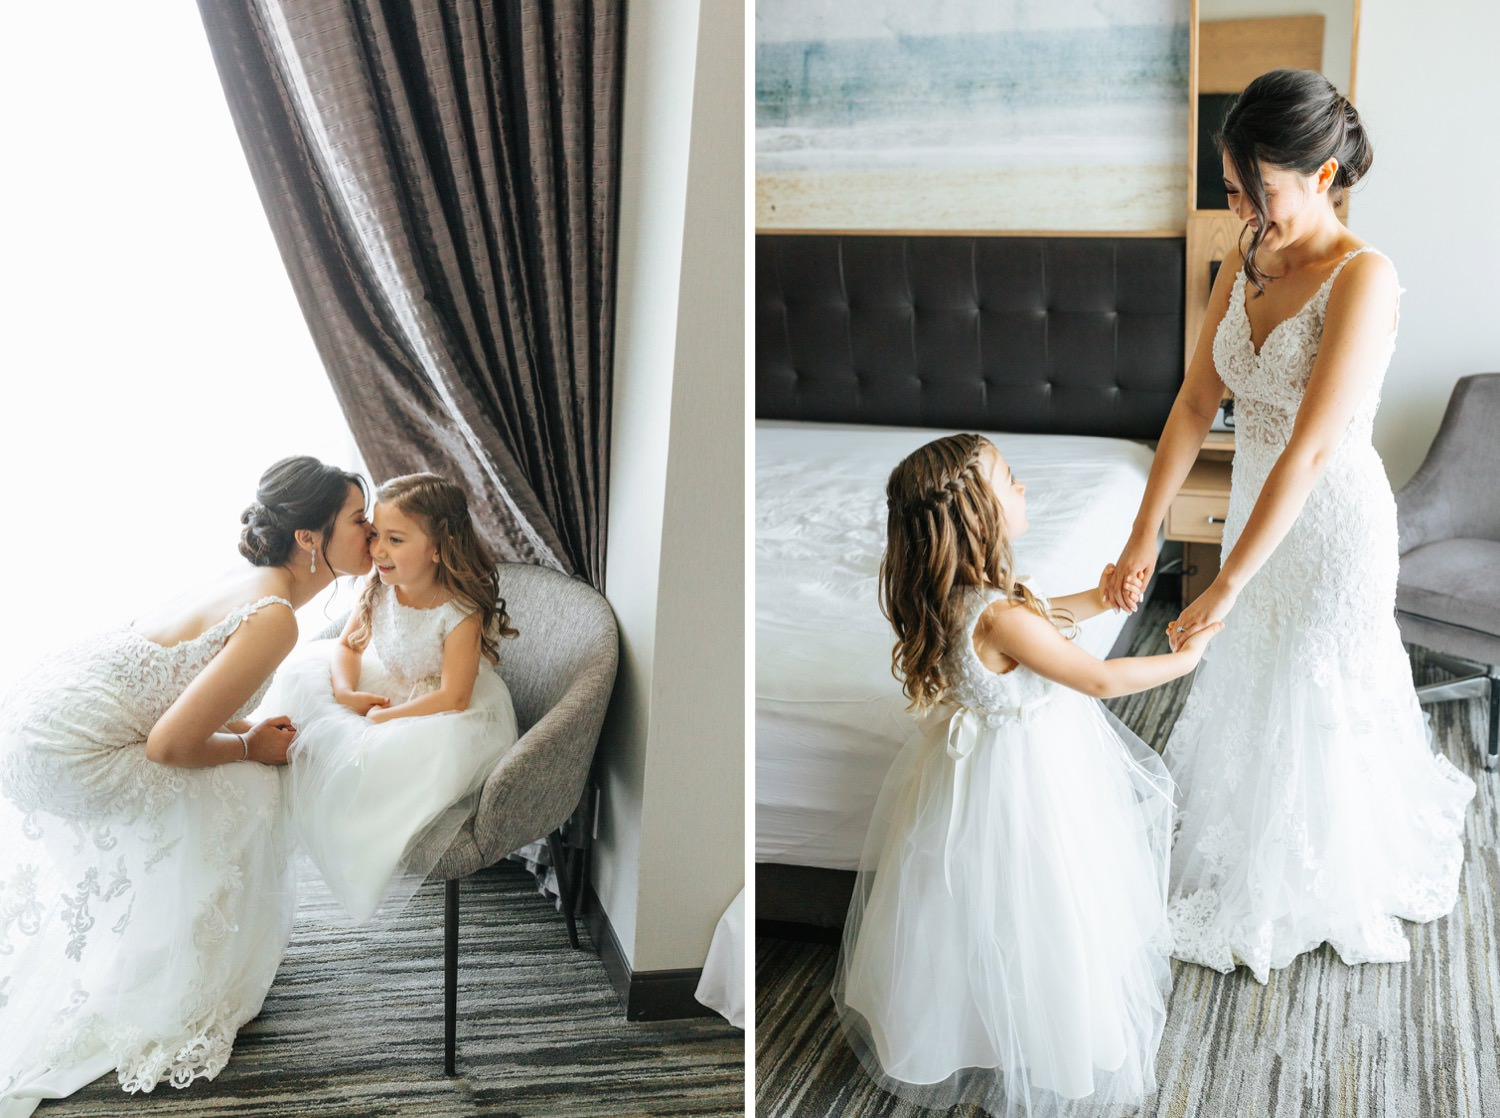 Flower girl with the bride - https://brittneyhannonphotography.com